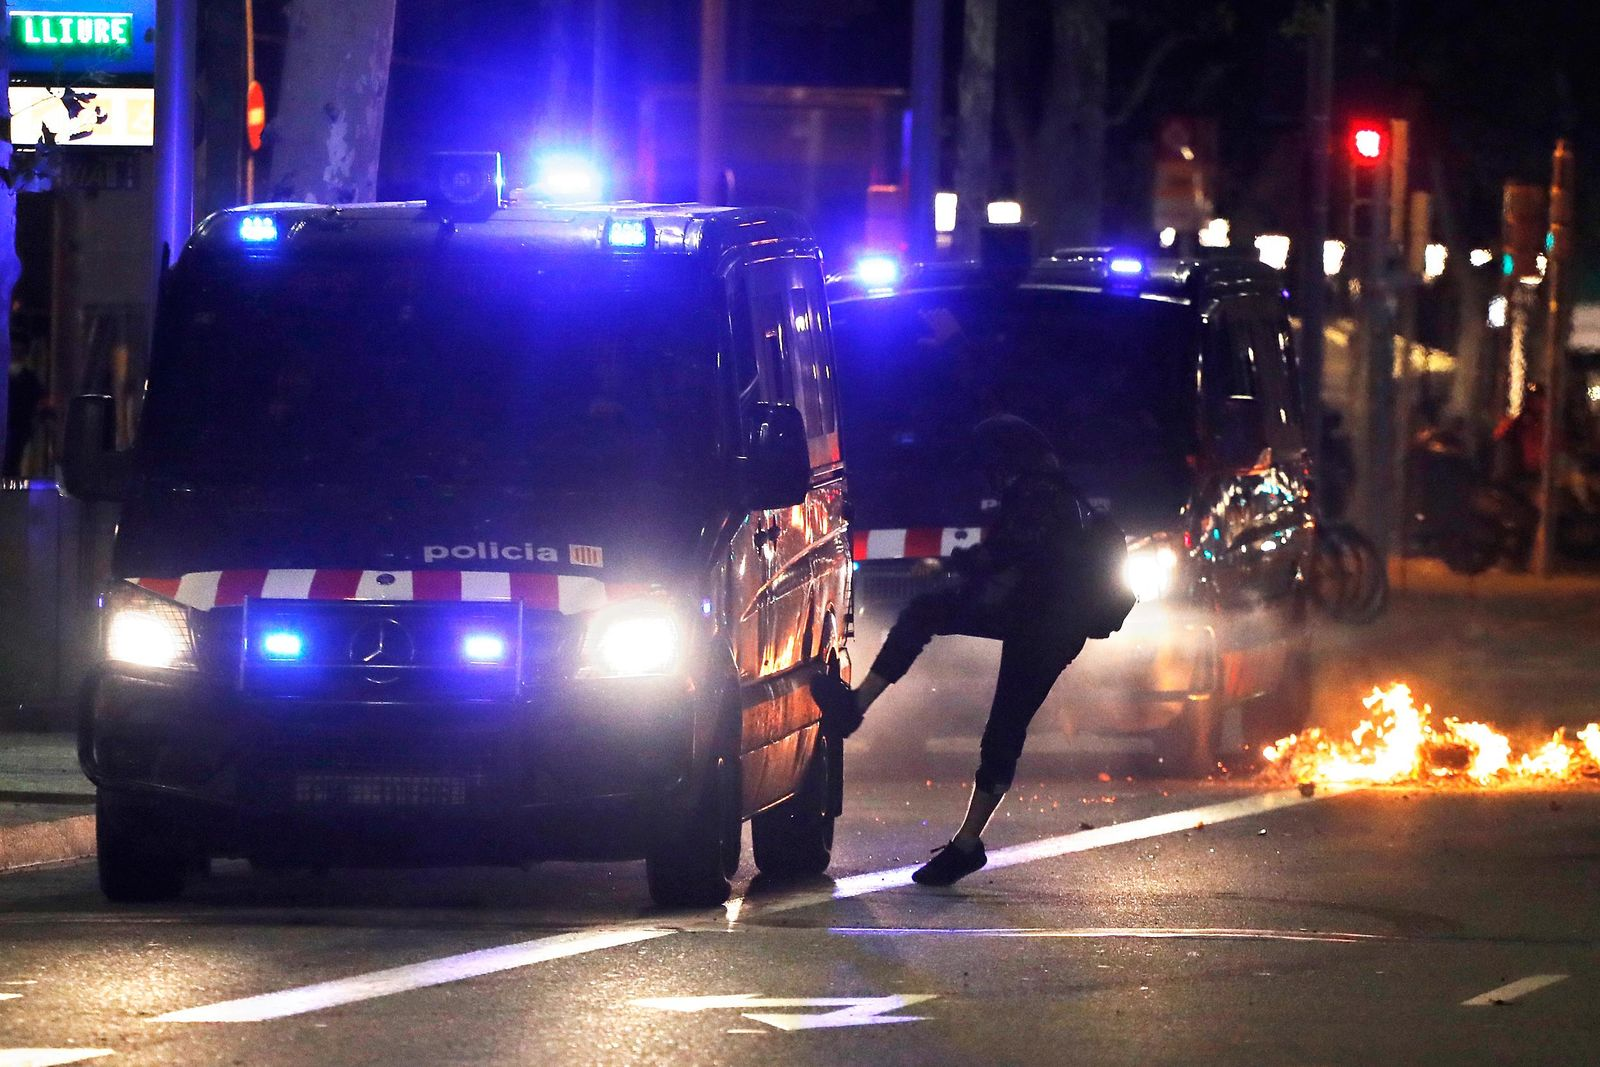 A protestor kicks a police van during clashes in Barcelona, Spain, Thursday, Oct. 17, 2019.{ } (AP Photo/Emilio Morenatti)